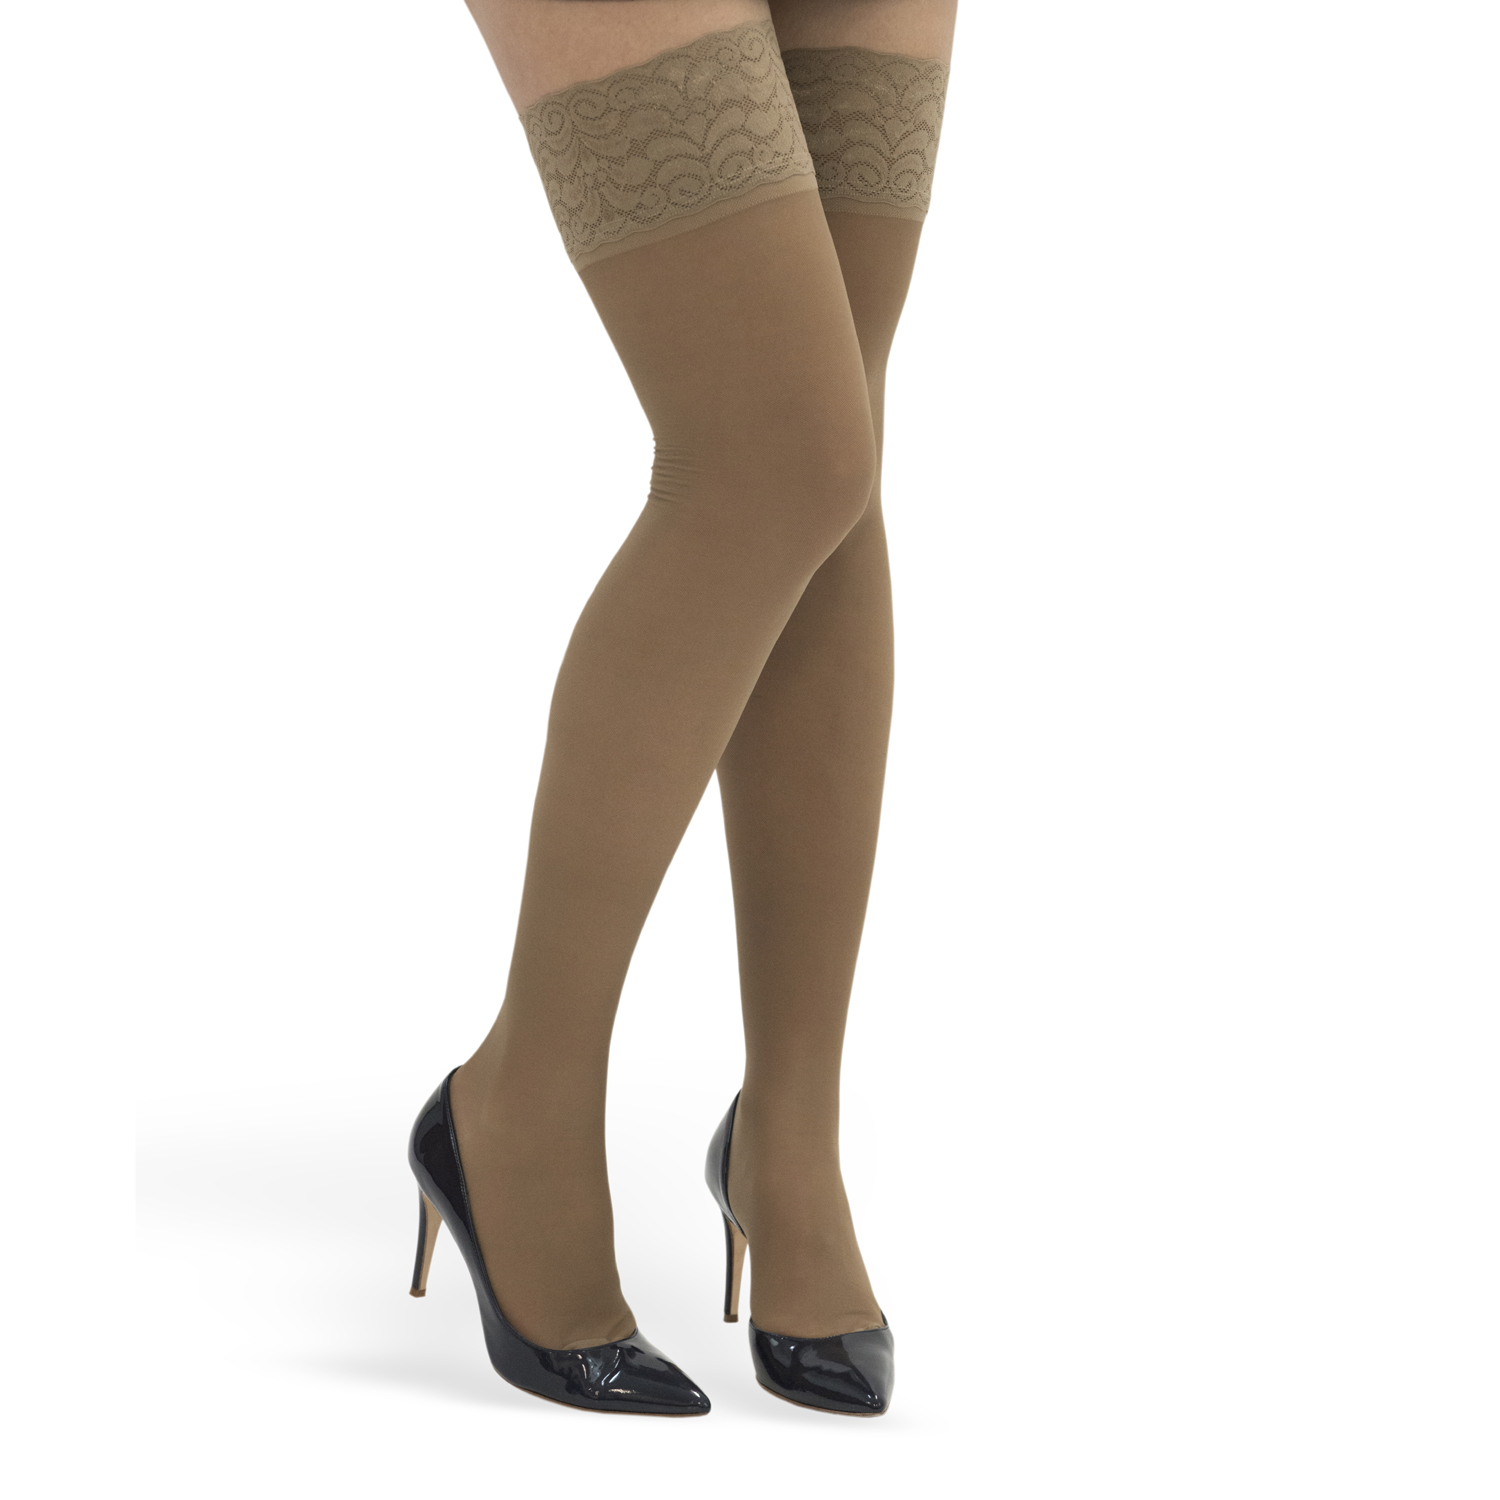 ITA-MED Style H-40 Lace Top Thigh Highs w/ Silicone Band